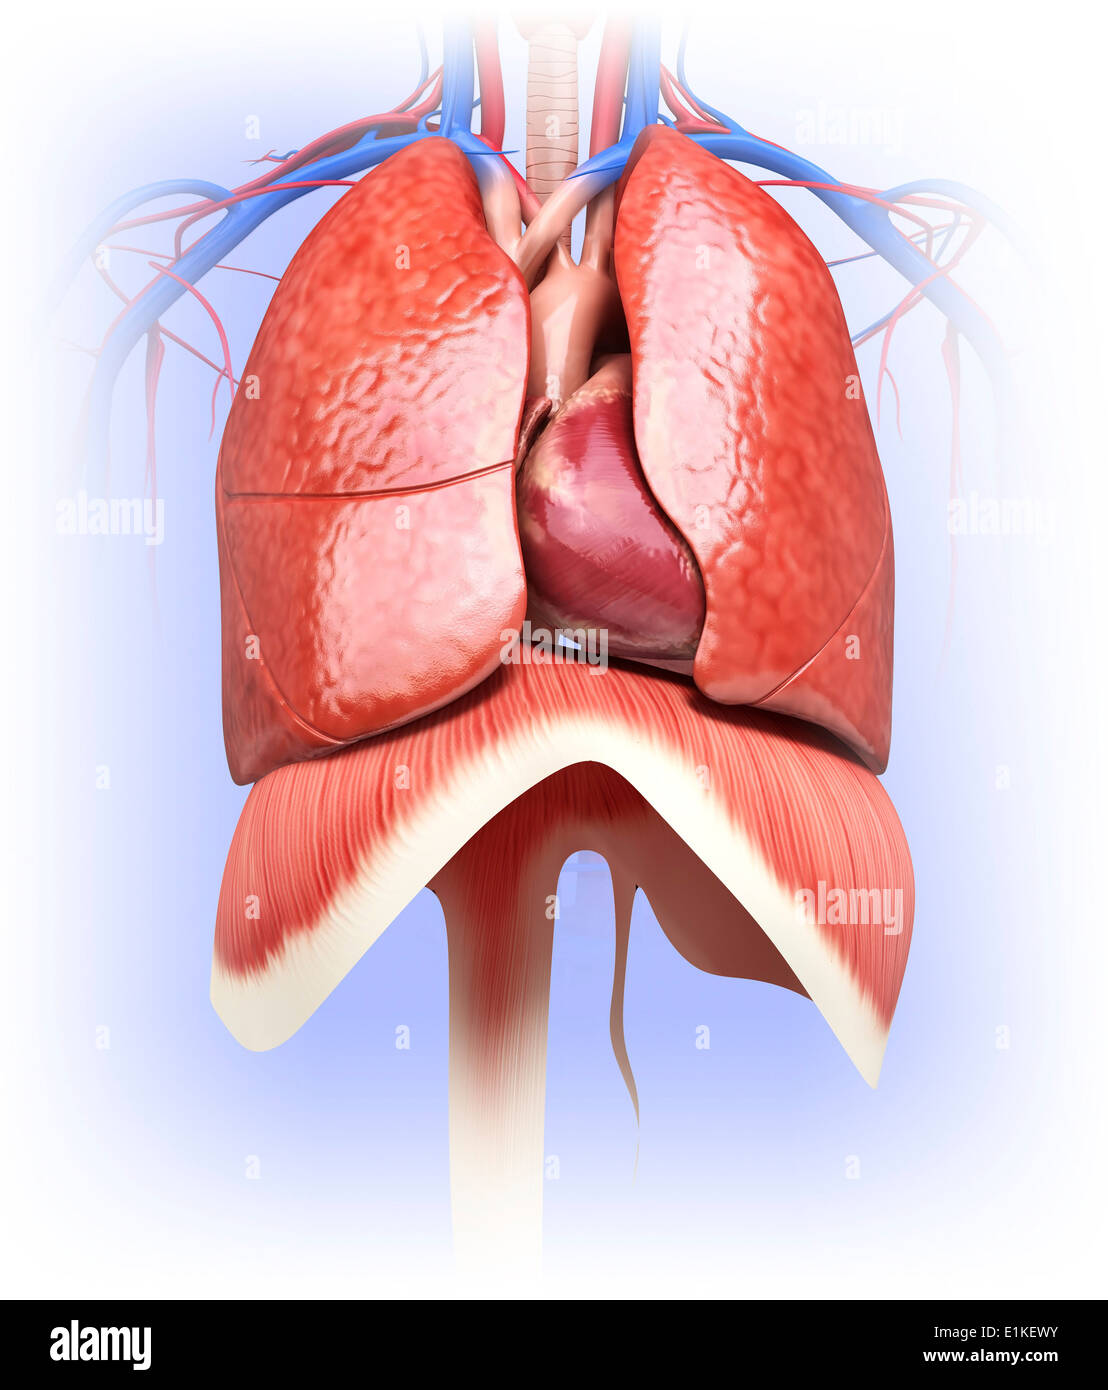 Human Heart And Lungs Computer Artwork Stock Photo 69884919 Alamy